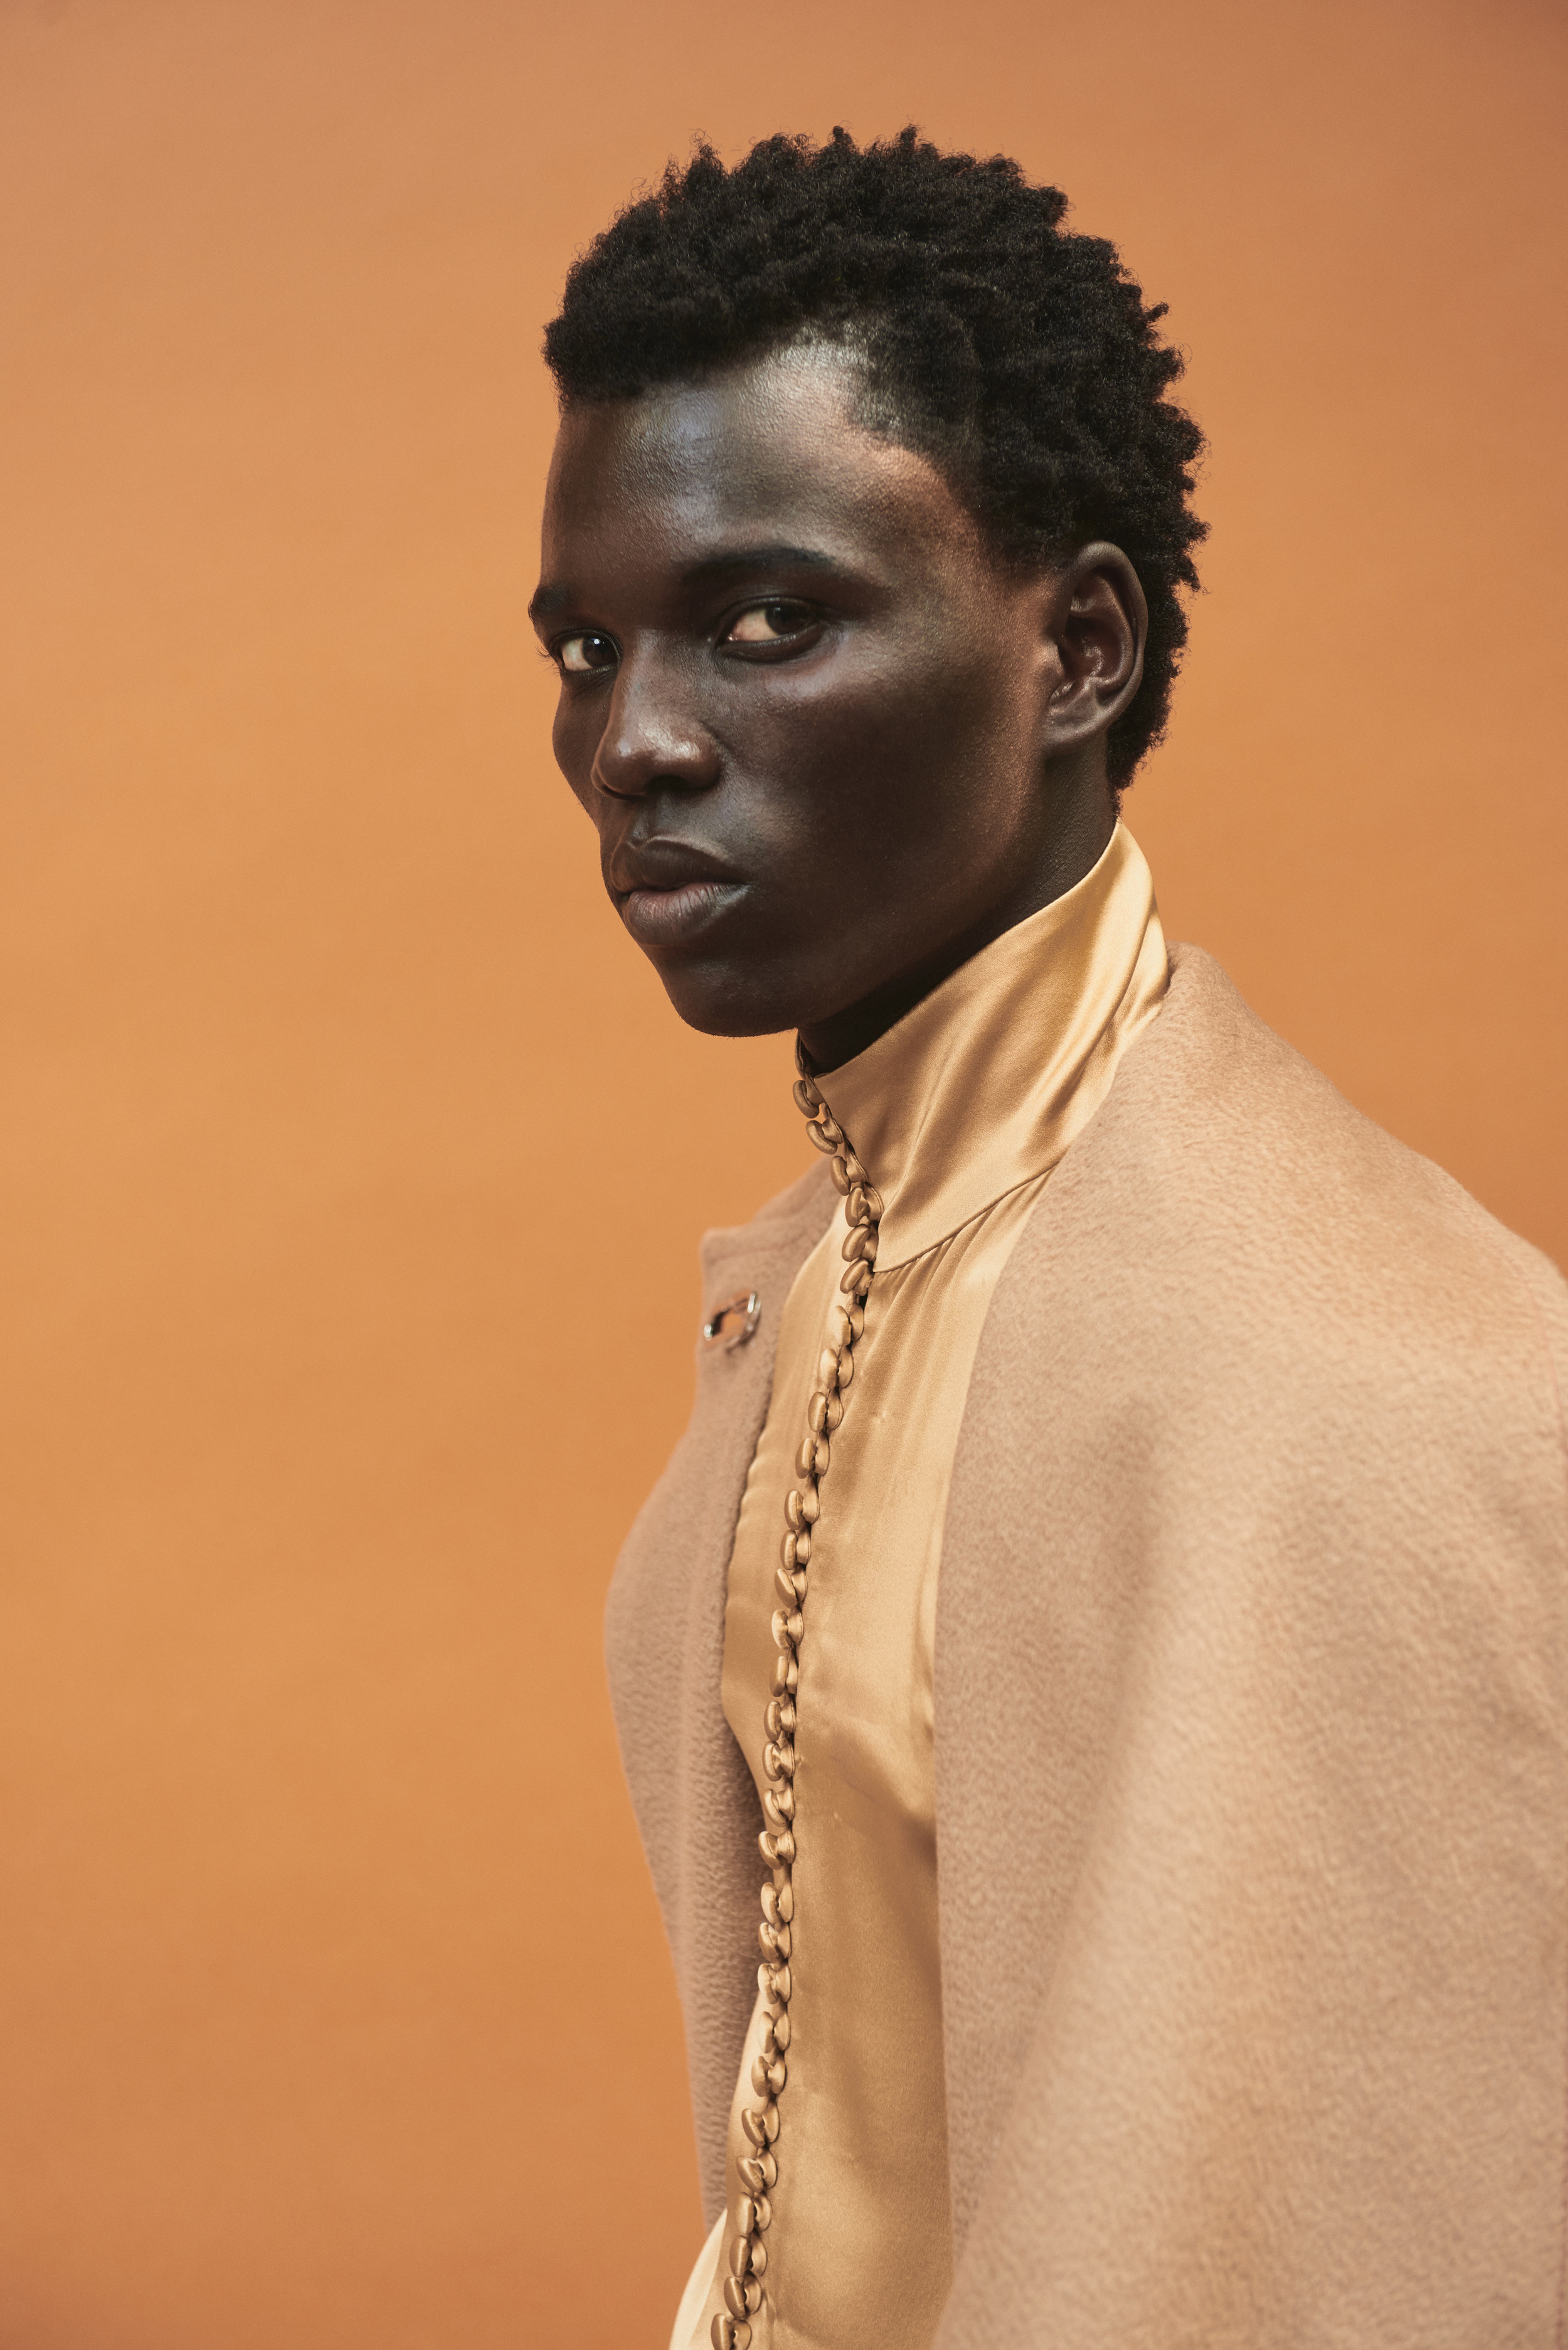 Photography: Timothy Smith -Styling: Paix Robinson - Grooming: Jake Aebly - Model: George Afrekh